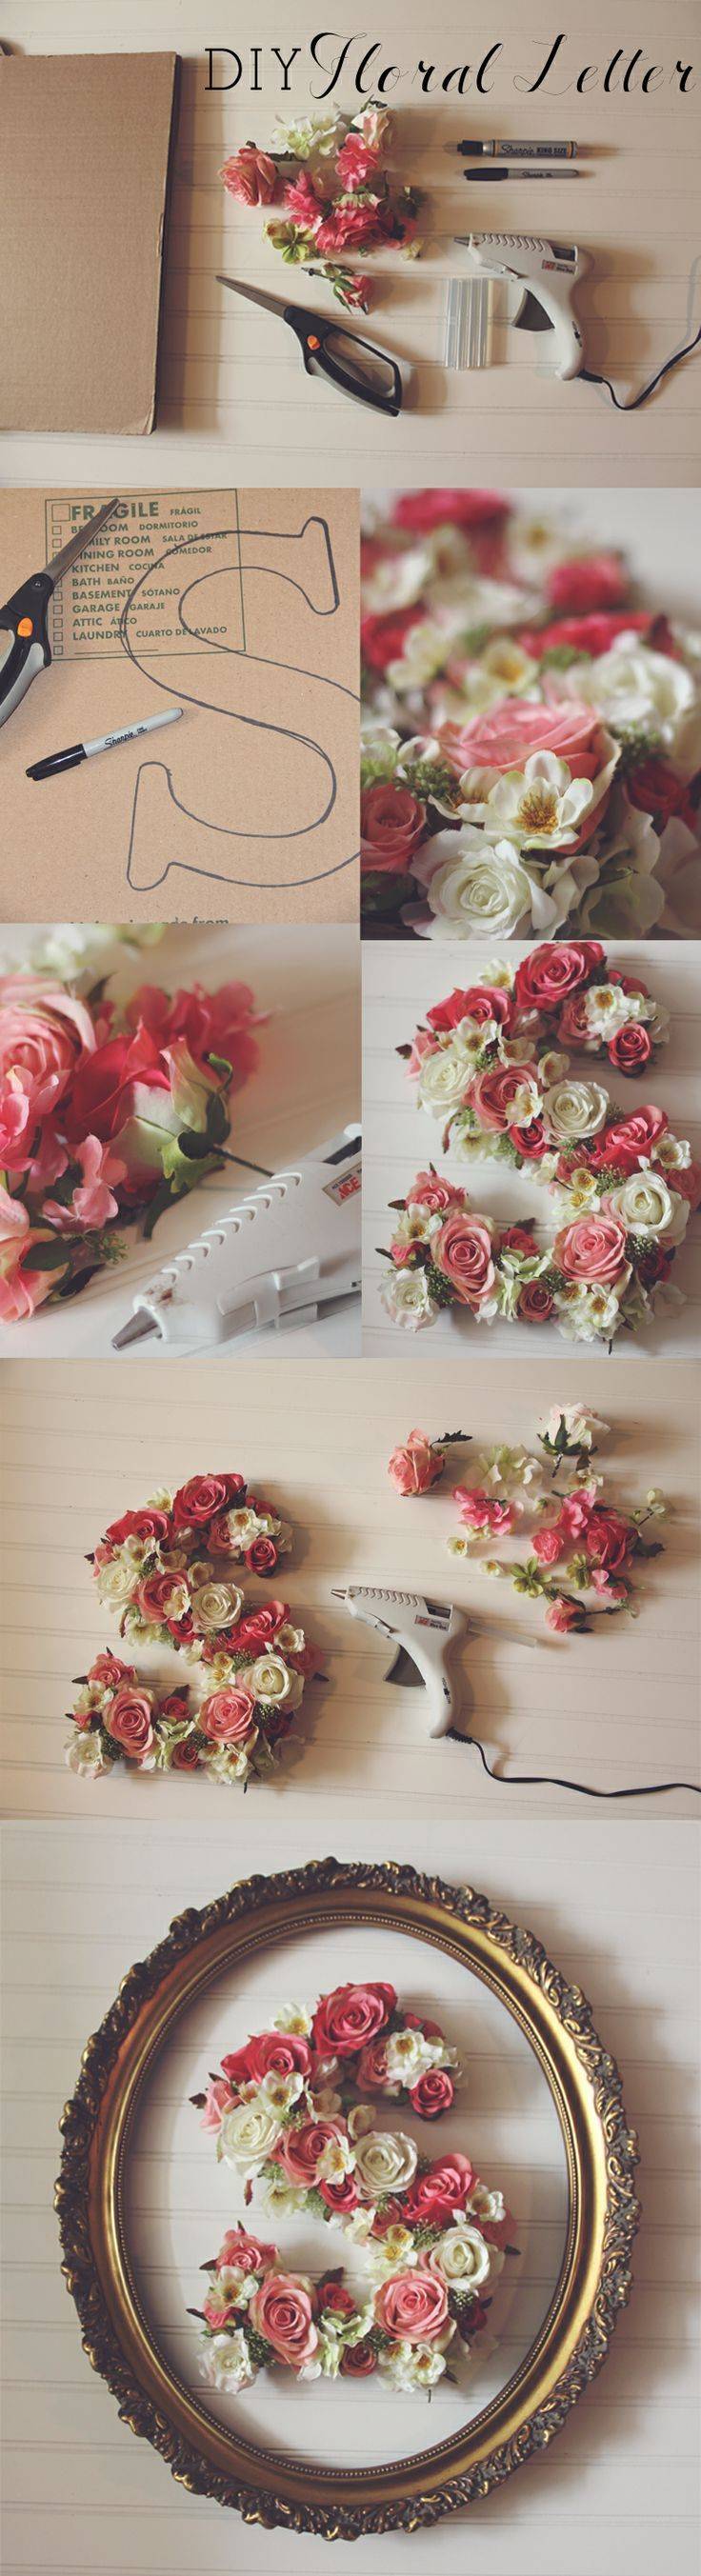 DIY floral letter...Love it, I'm sooooo doing this!!! - we can SO make this for your wedding!!! #manualidades_diy_deco